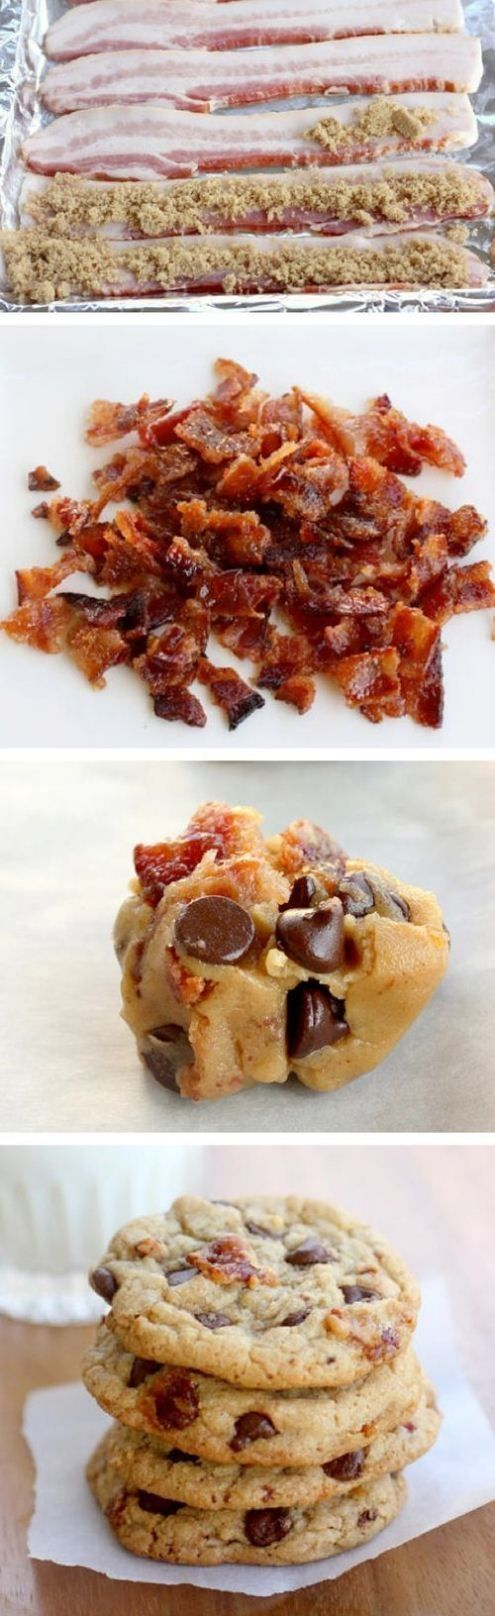 ... could be really yucky..or really good...Bacon chocolate chip cookies